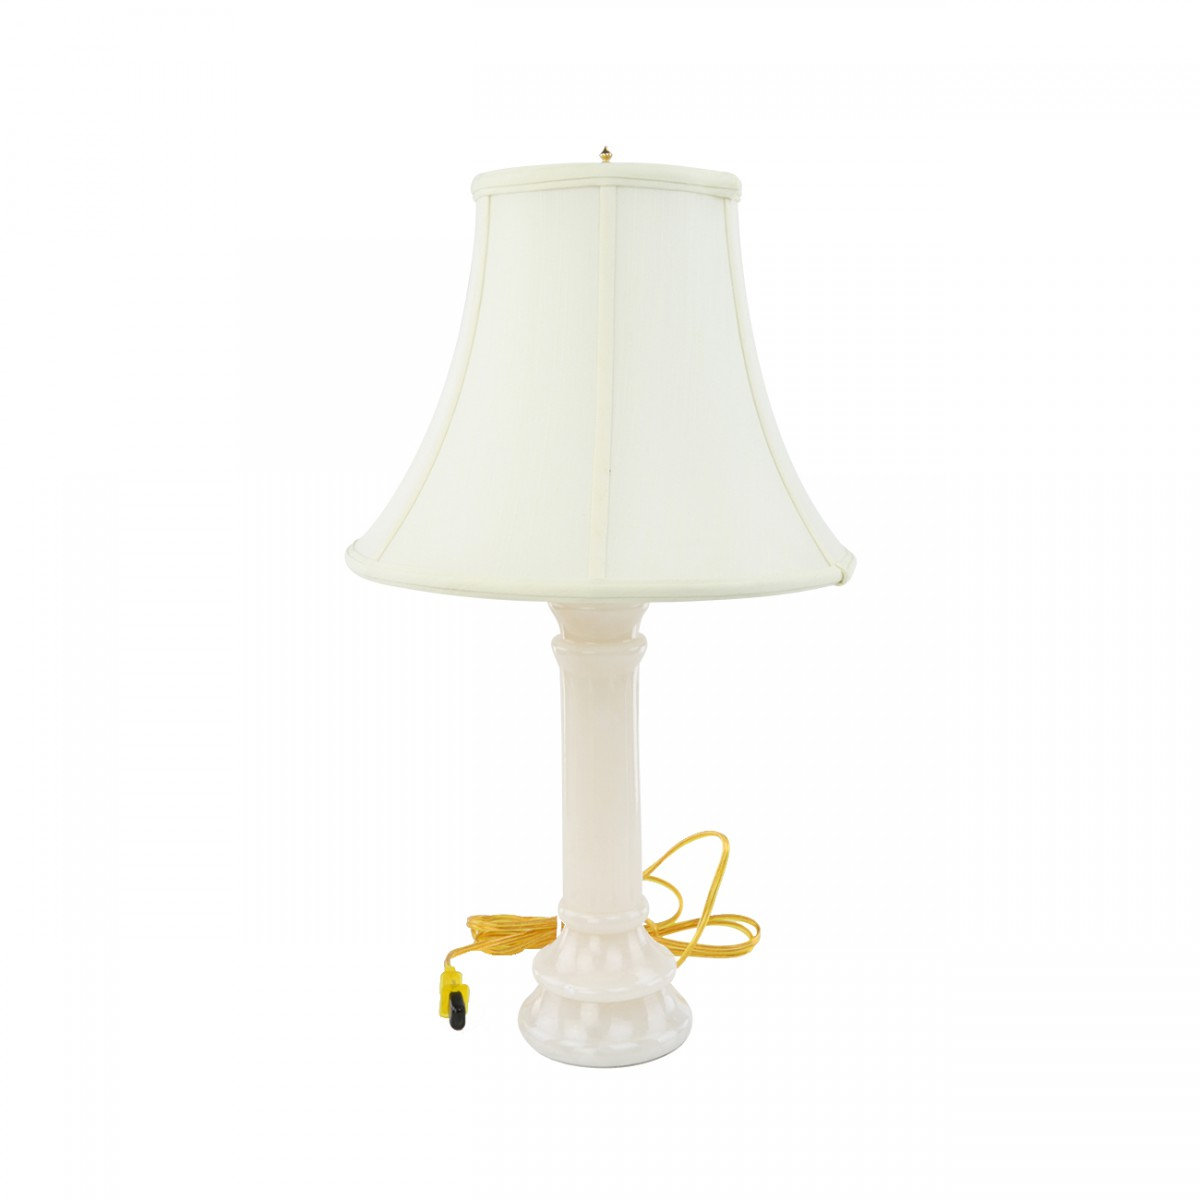 2 Table Lamp White Alabaster Pillar Beige Shade 22H Lamp Table Lights Lamps